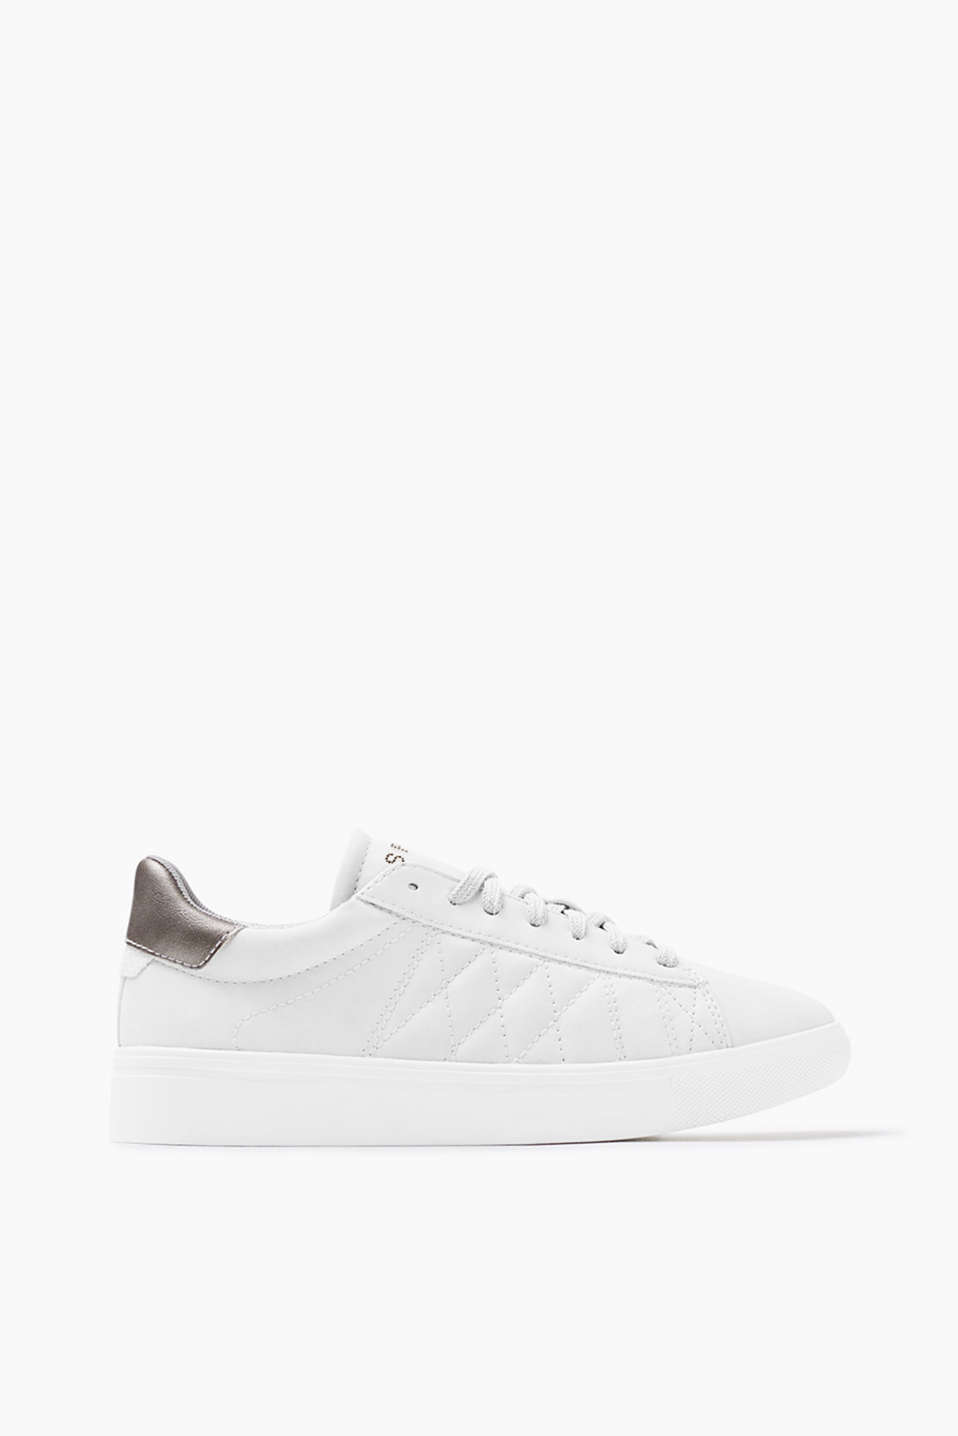 In soft imitation suede: lace-up trainers with a metallic trim